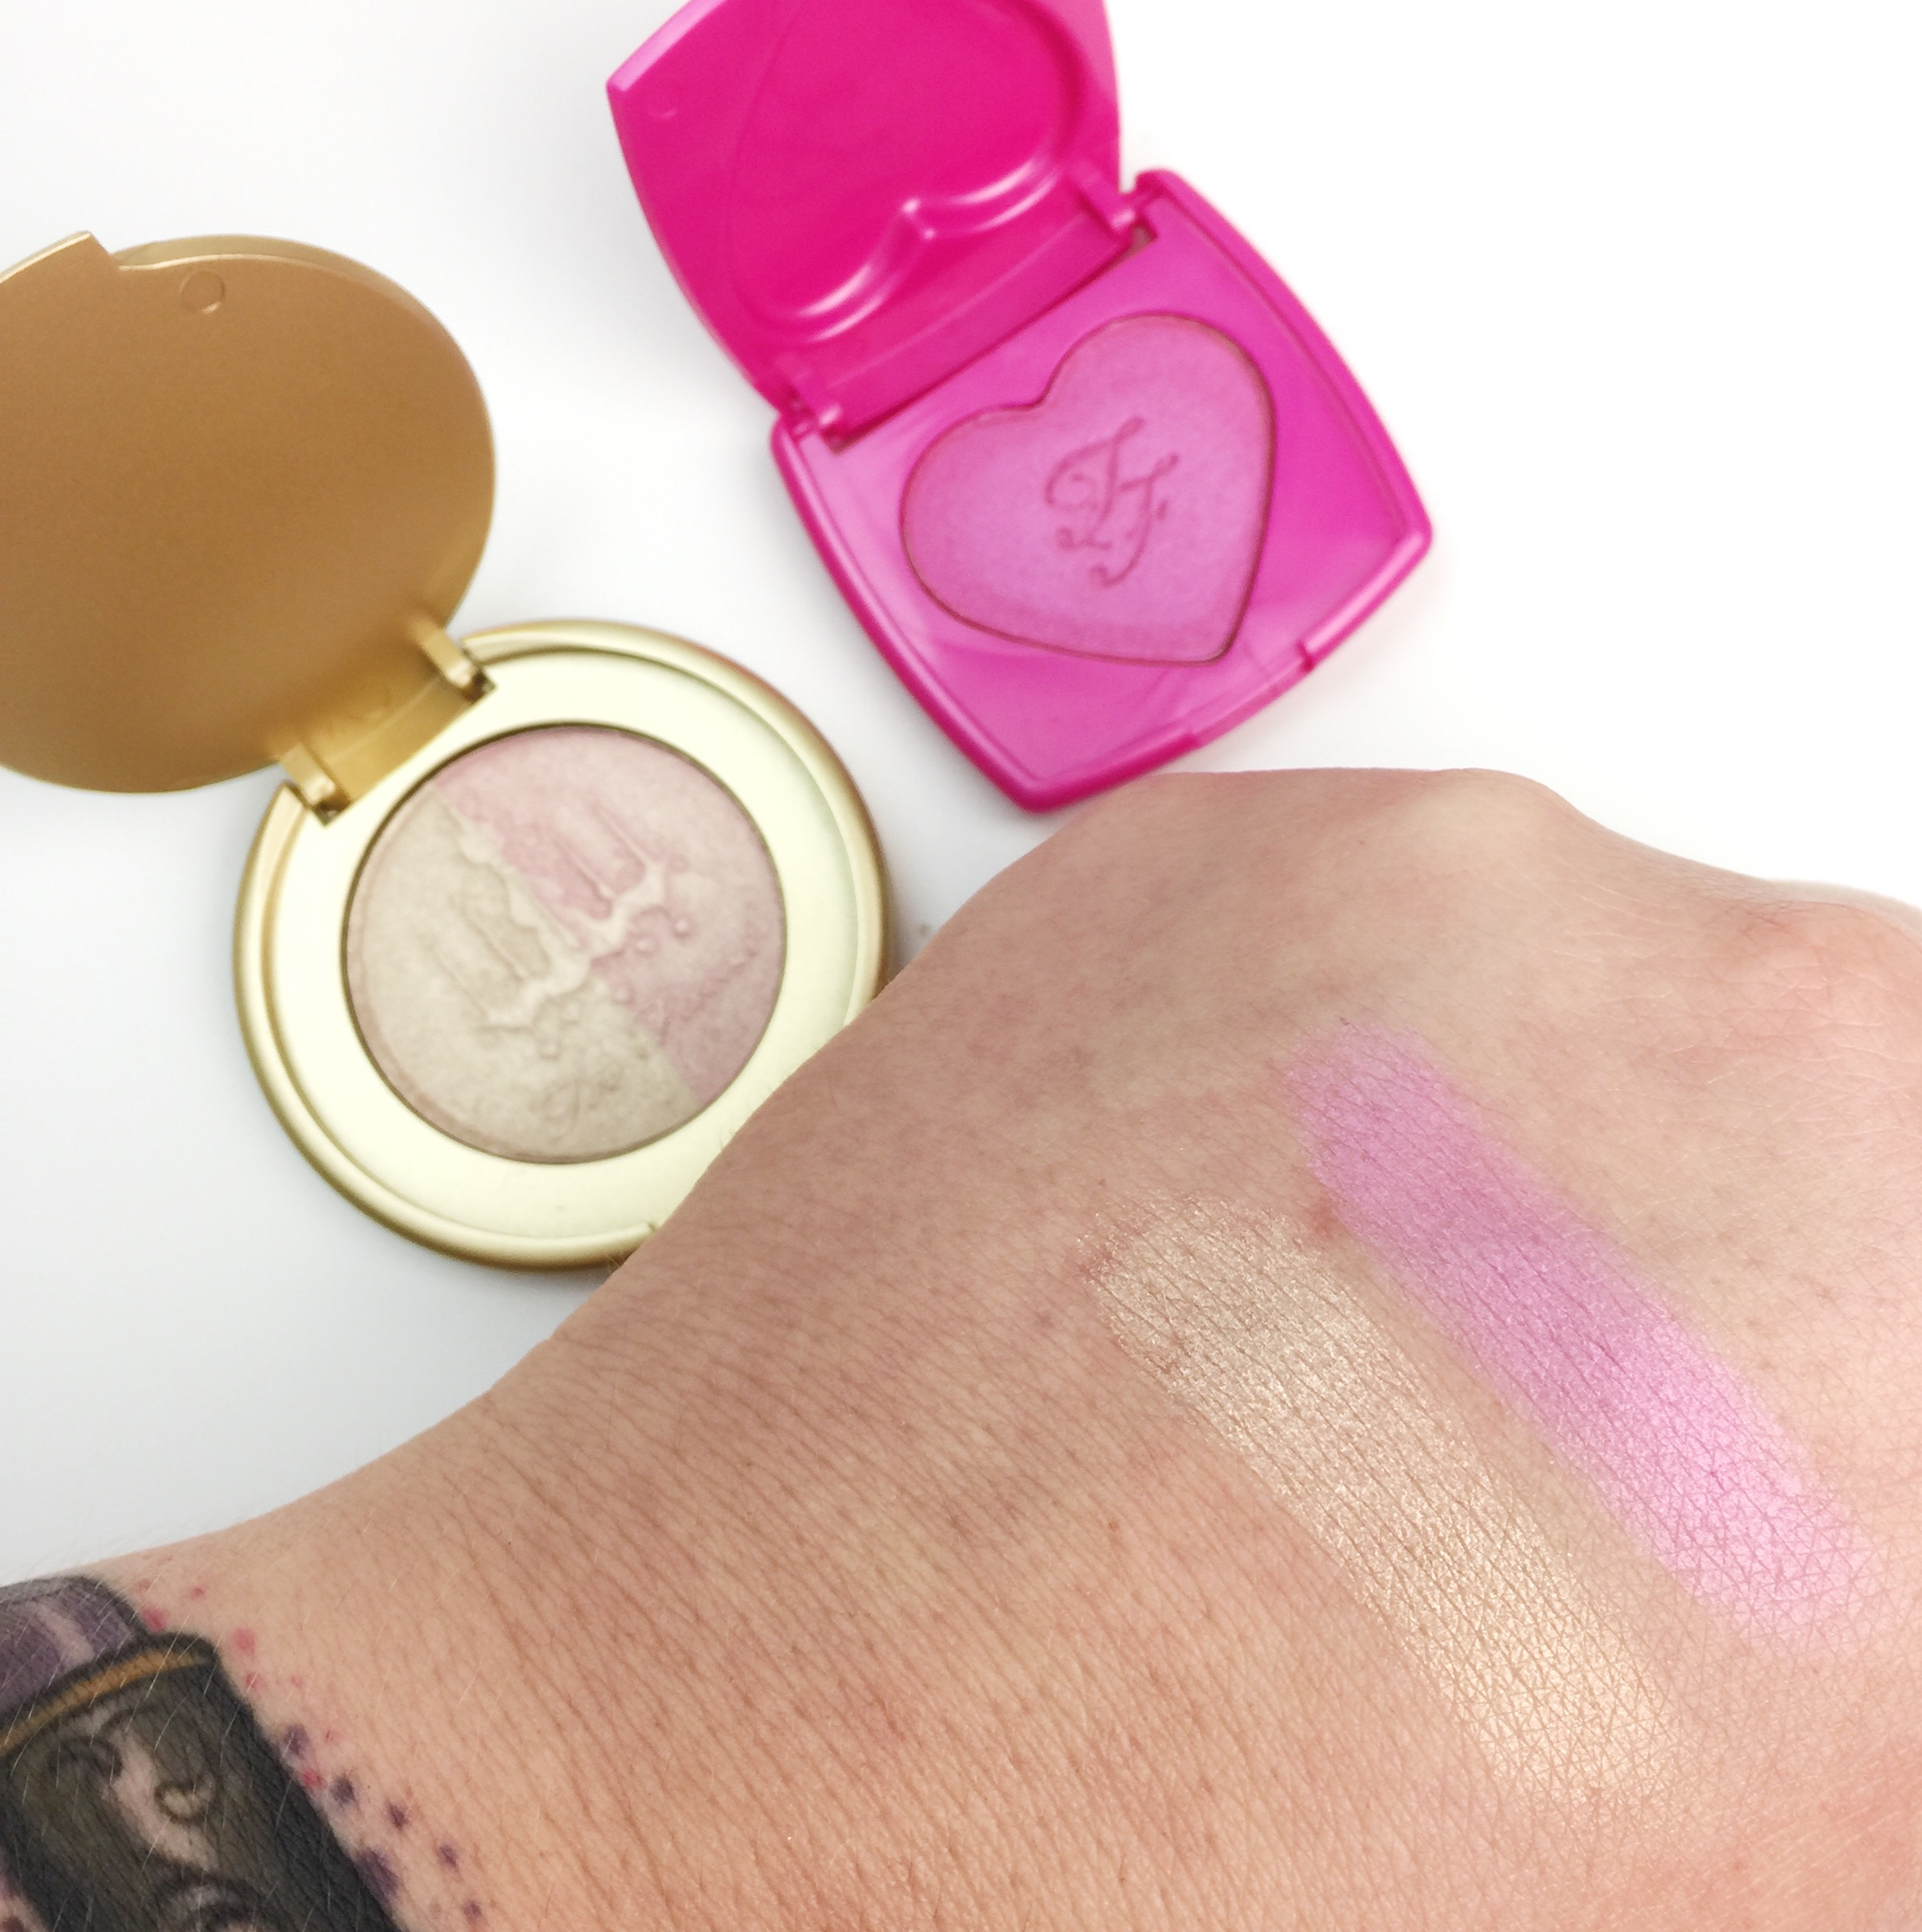 Believe The Hype: Too Faced Better Together Collection Swatches - Artificial Light